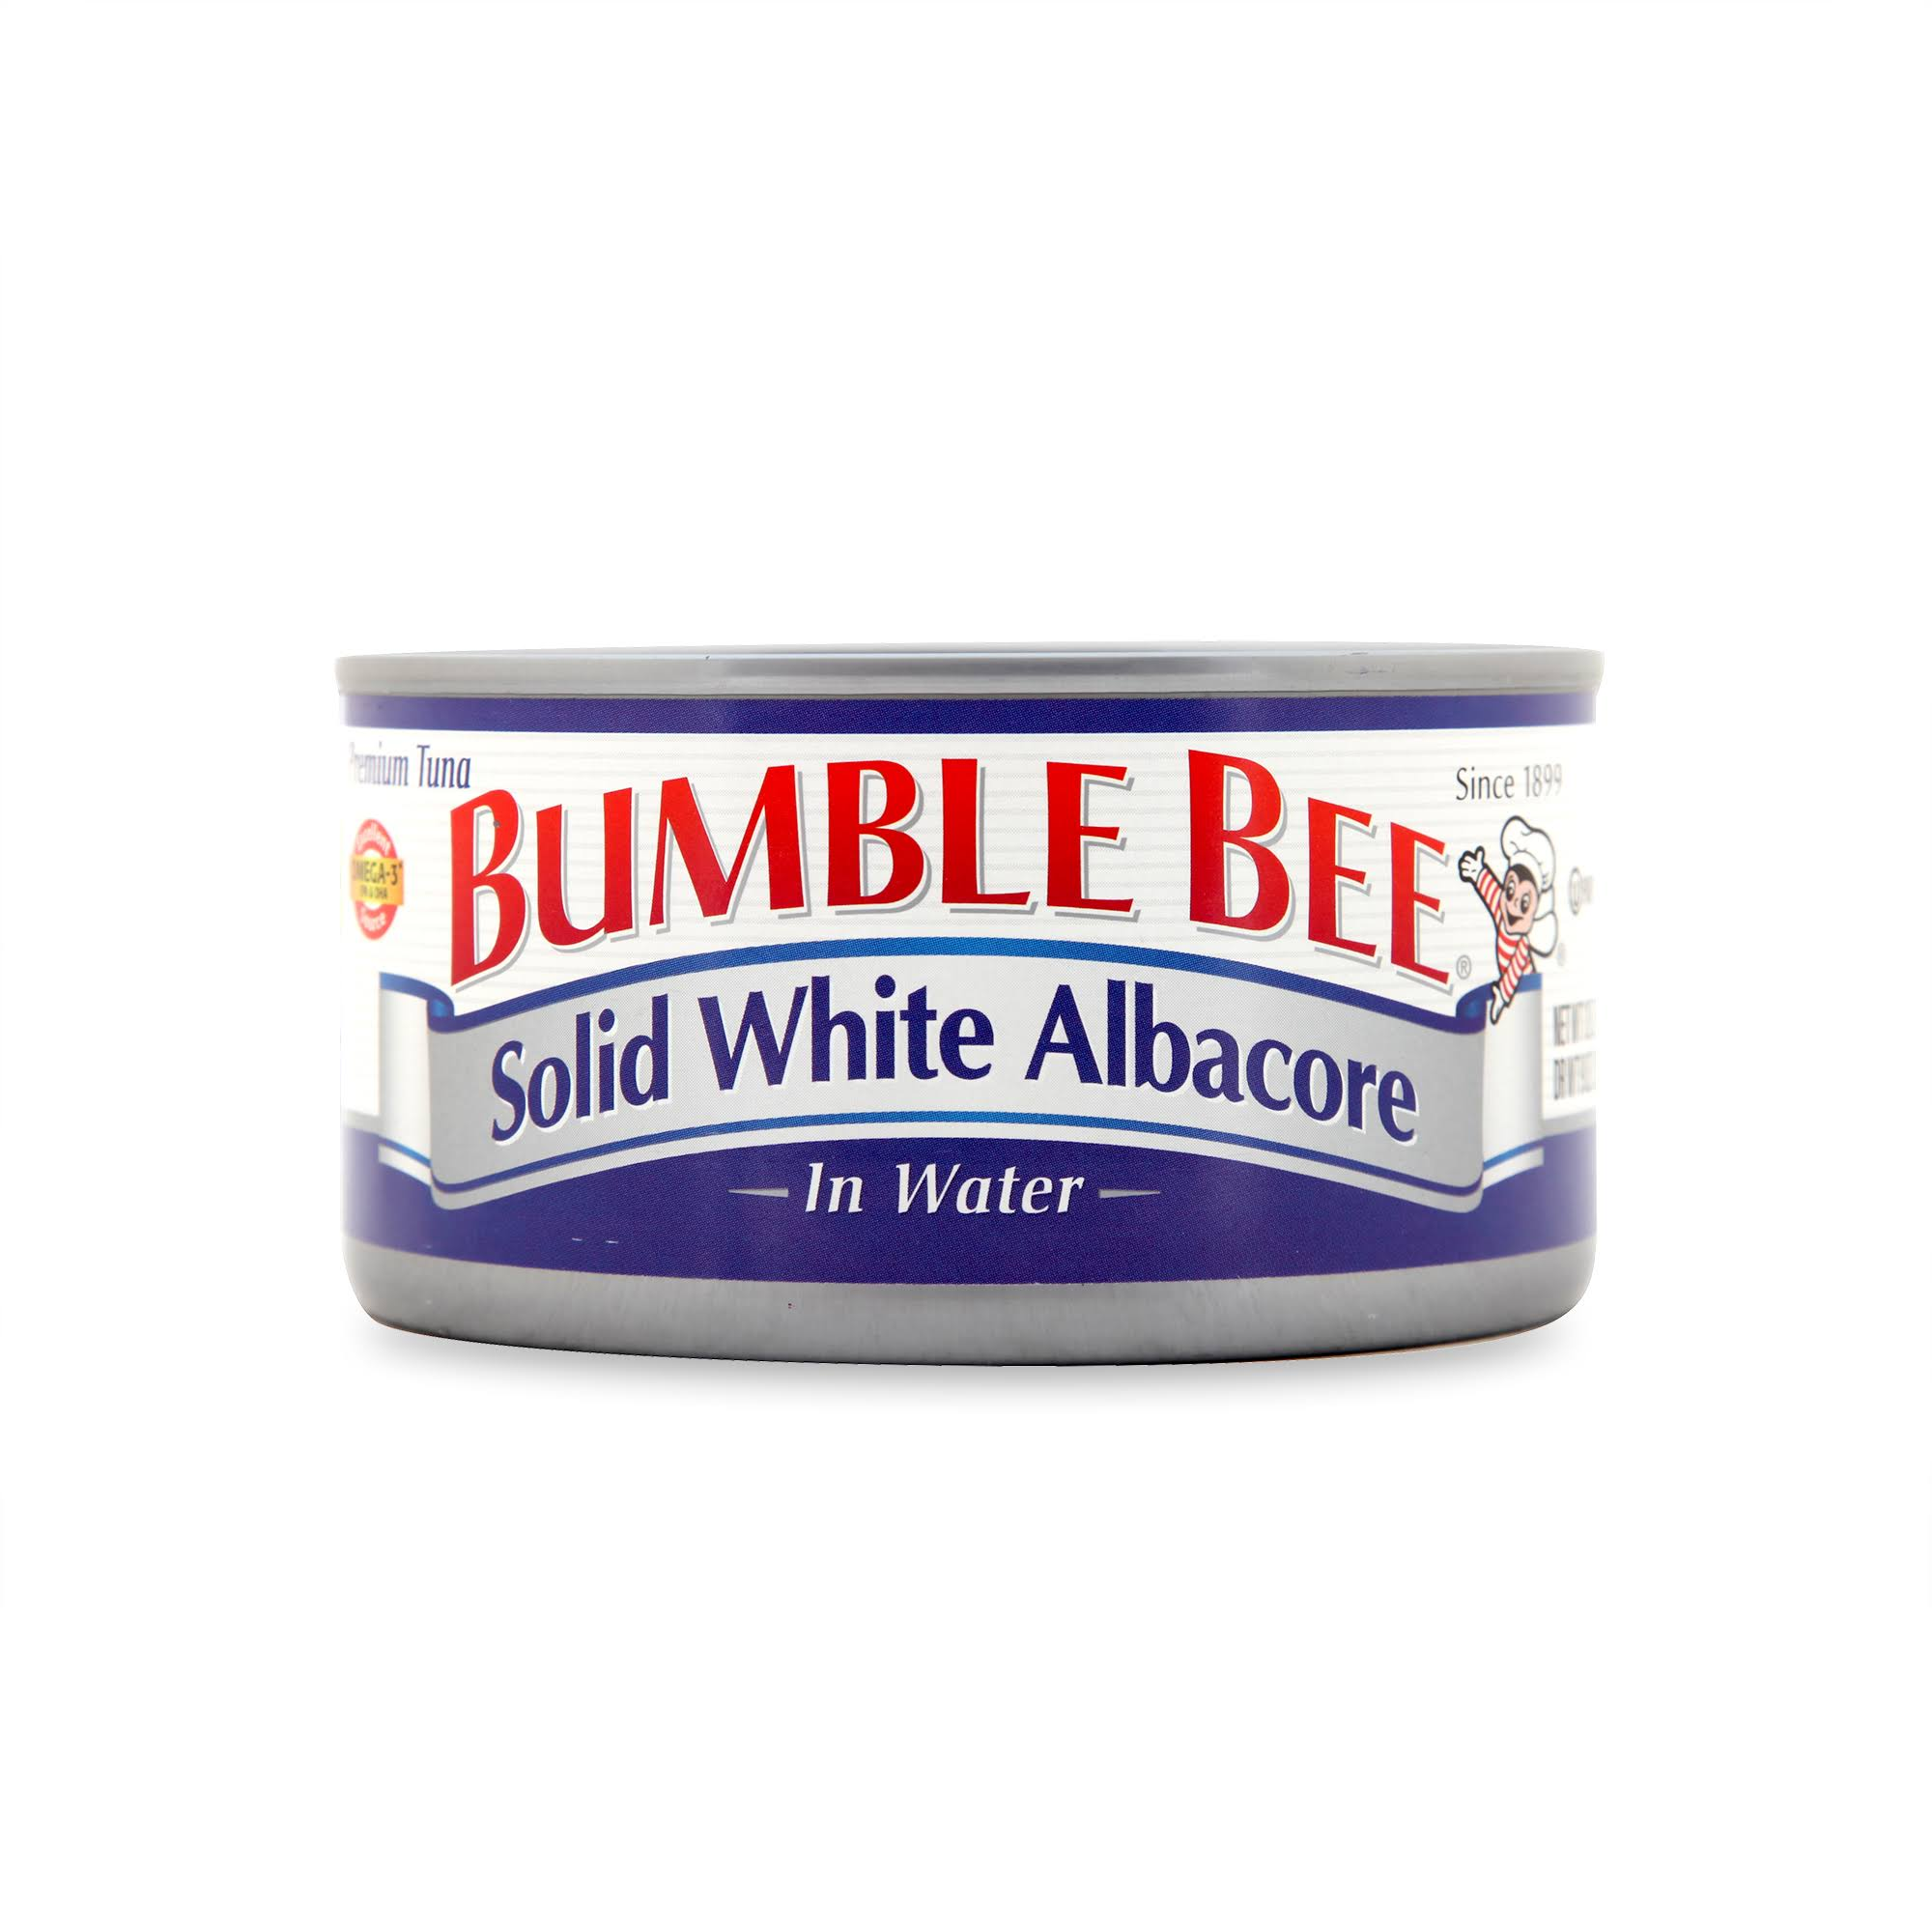 Bumble Bee Solid White Albacore Tuna - In Water, 12oz